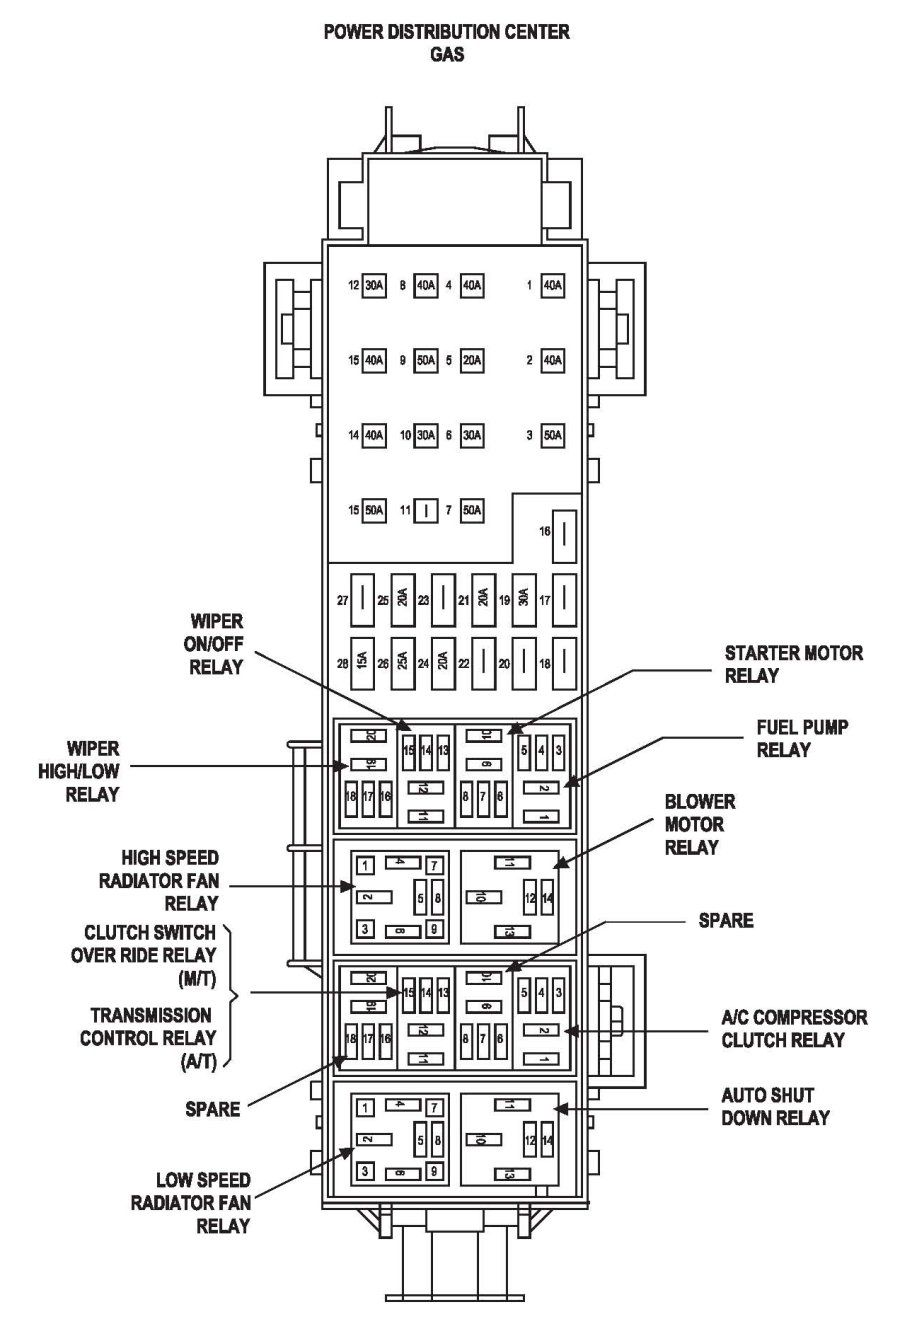 Jeep Fuses Diagram Wiring Library Whirlpool Lgb6200k Dryer Liberty Fuse Box Image Details